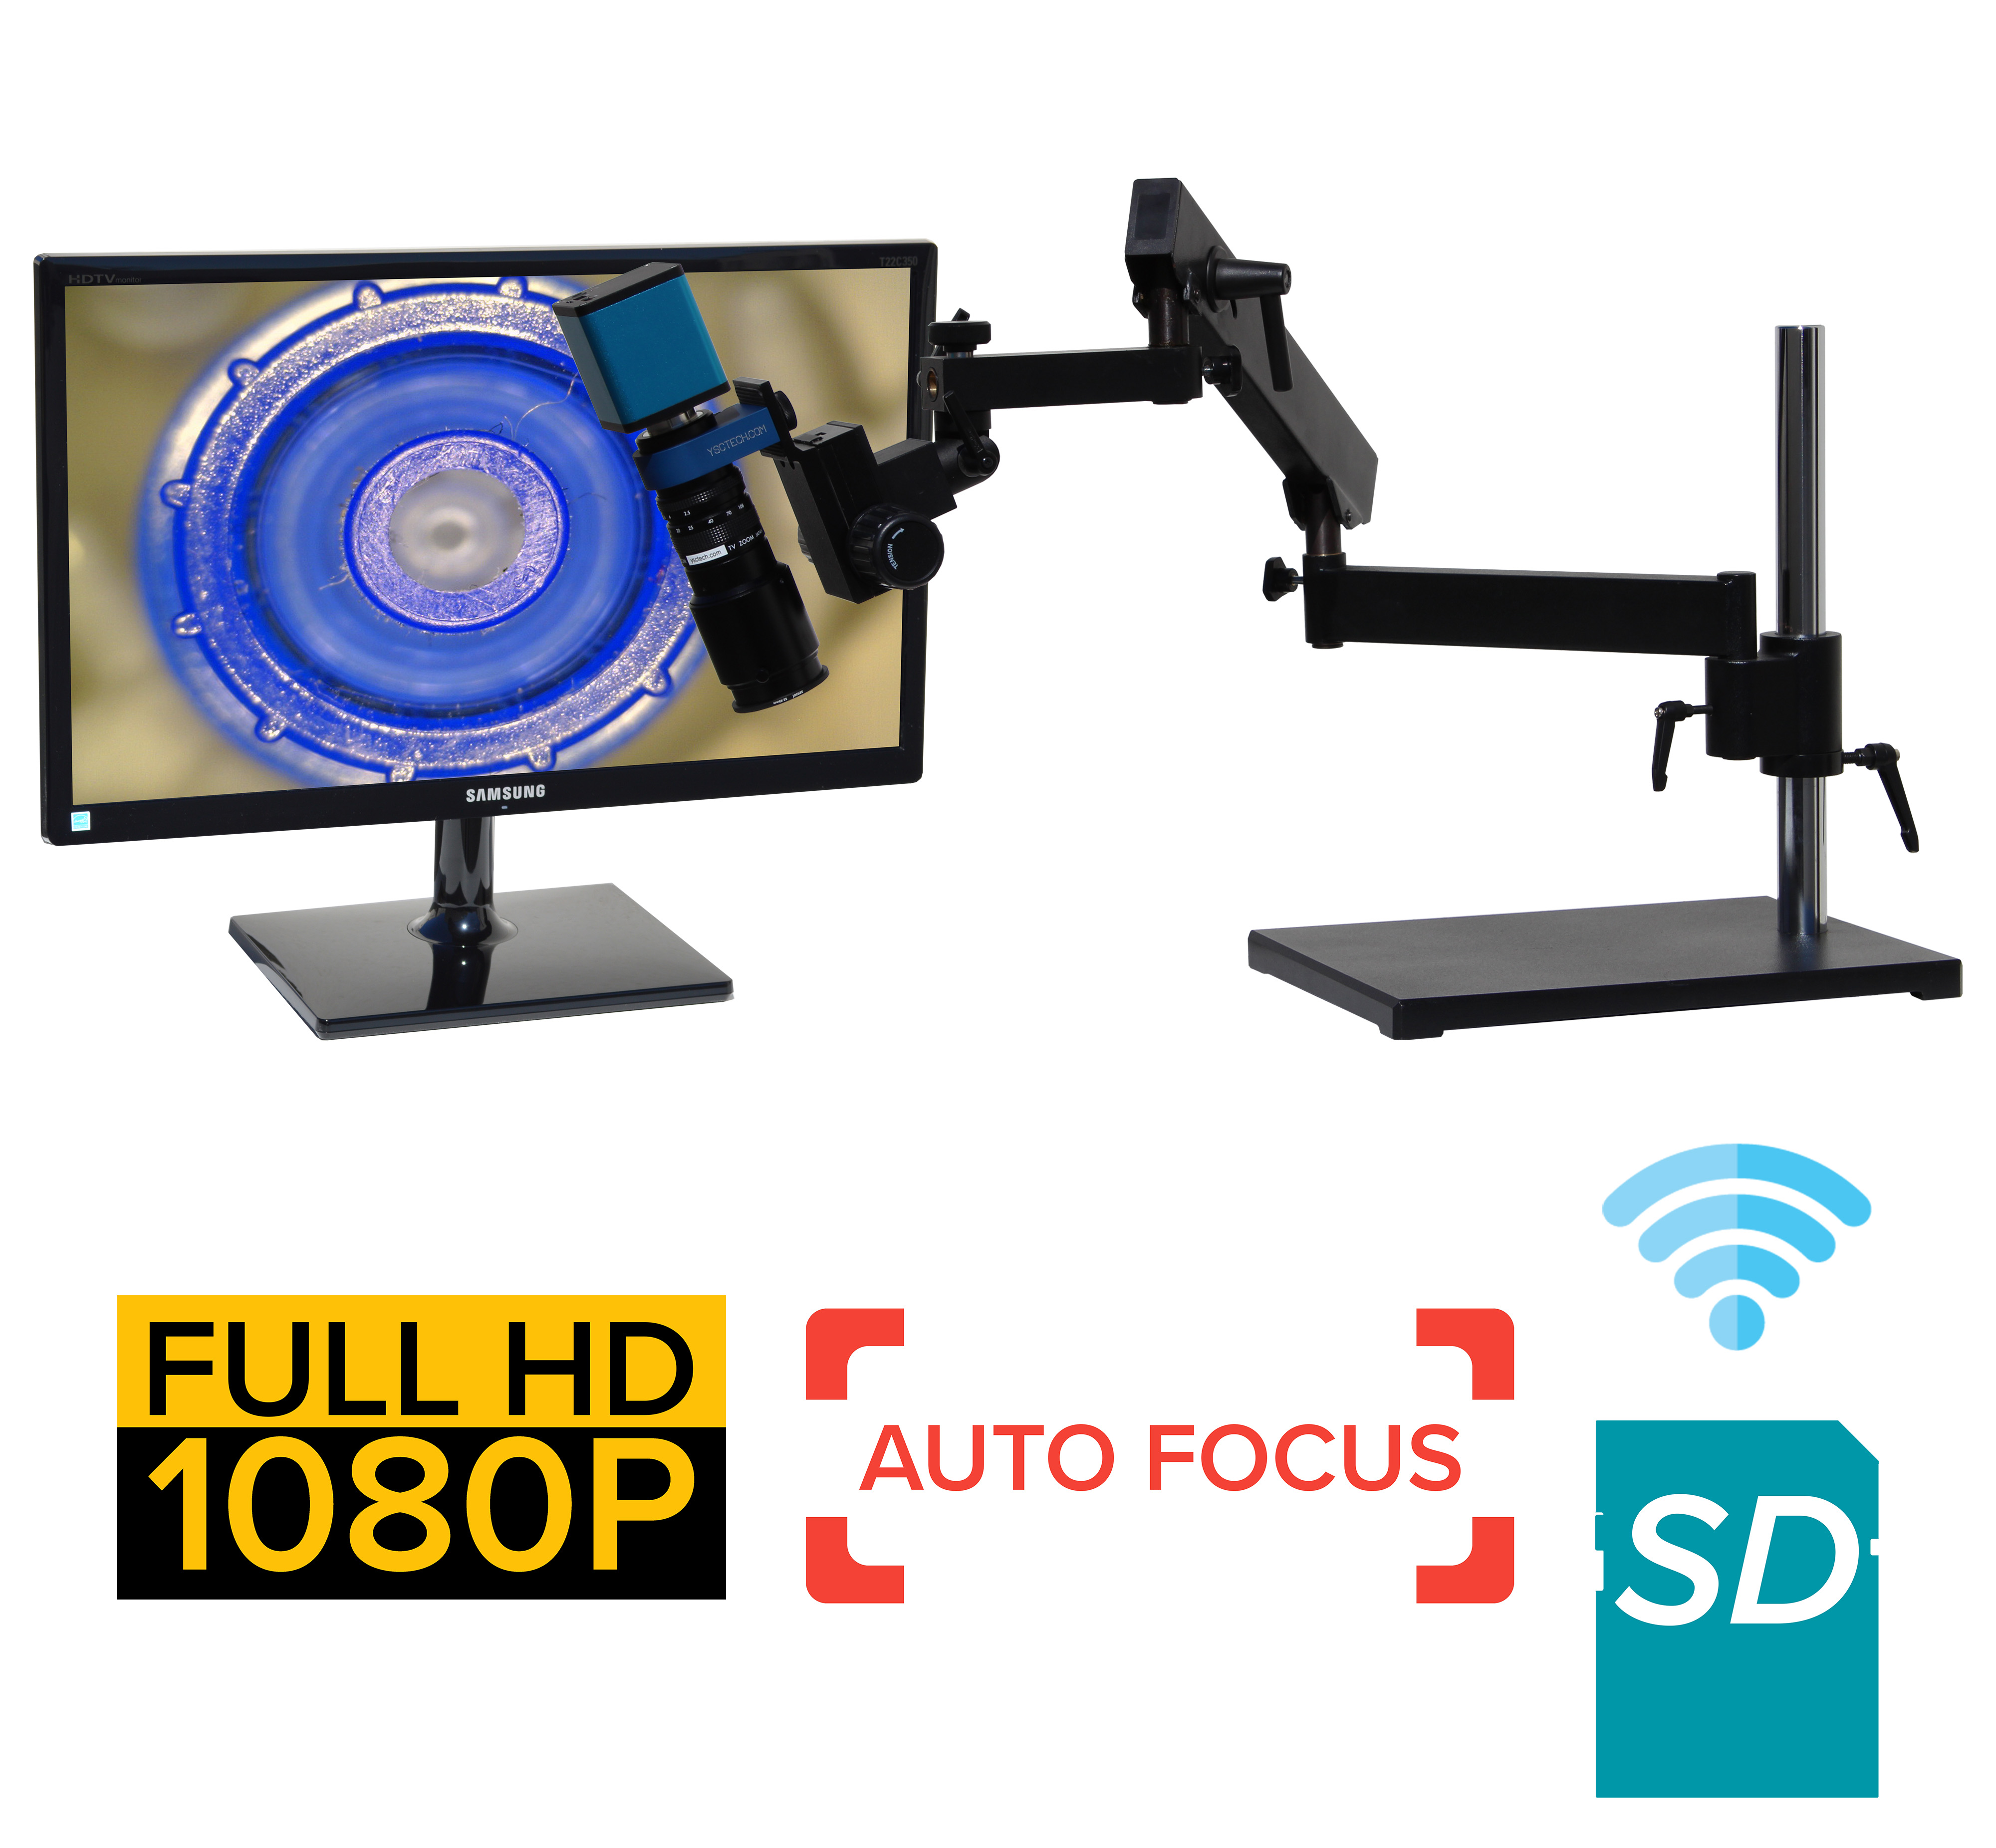 eHDAF201 series 4x-91x or 8x-182x Auto Focus + Wi-Fi + HD1080p + SD card [Start at $2000]